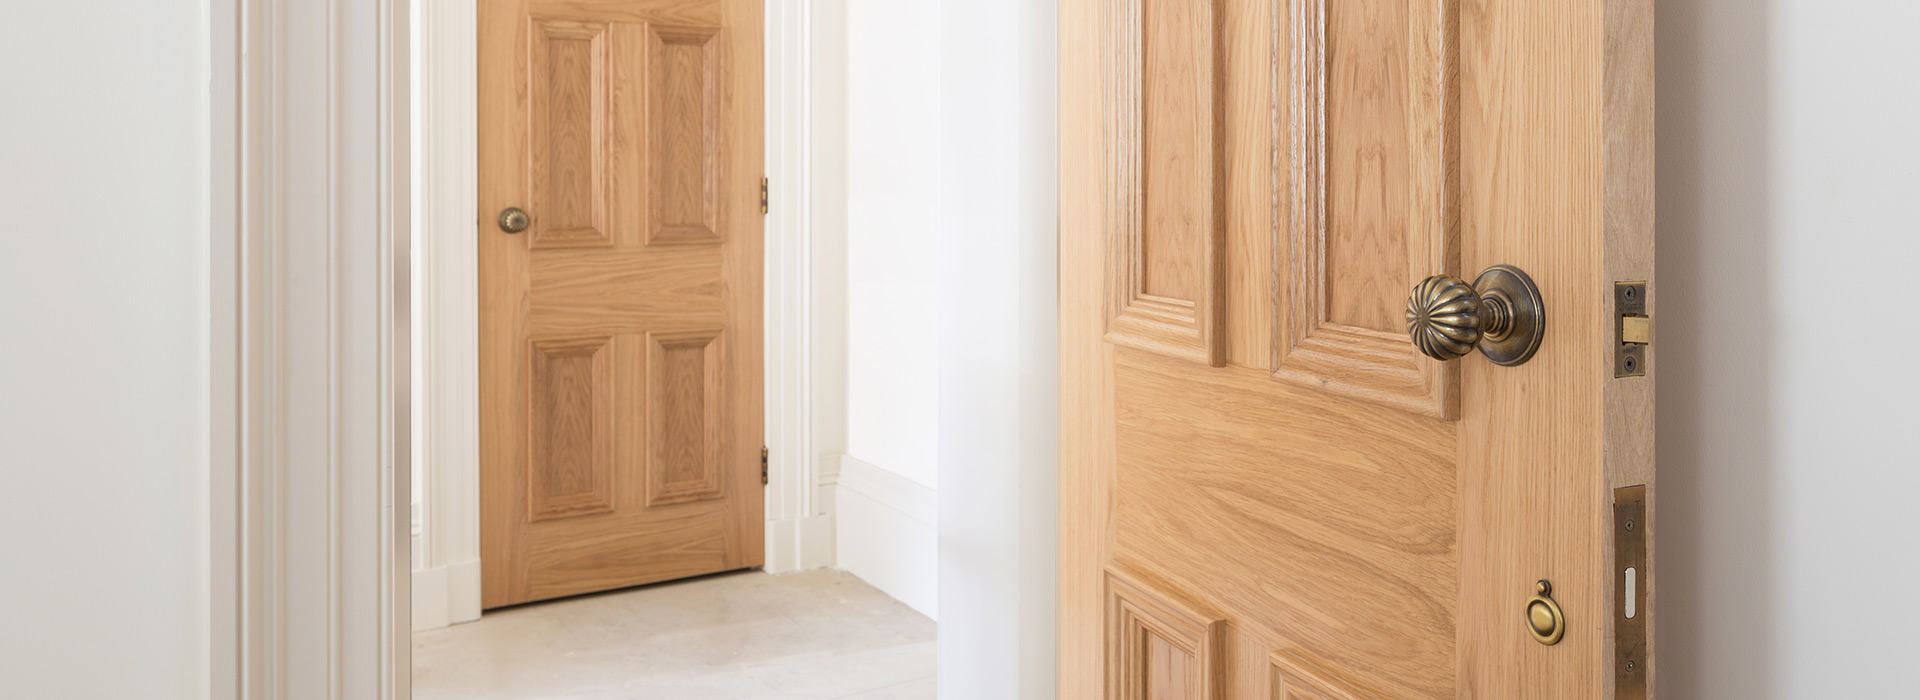 Traditional Oak doors with beehive knobs